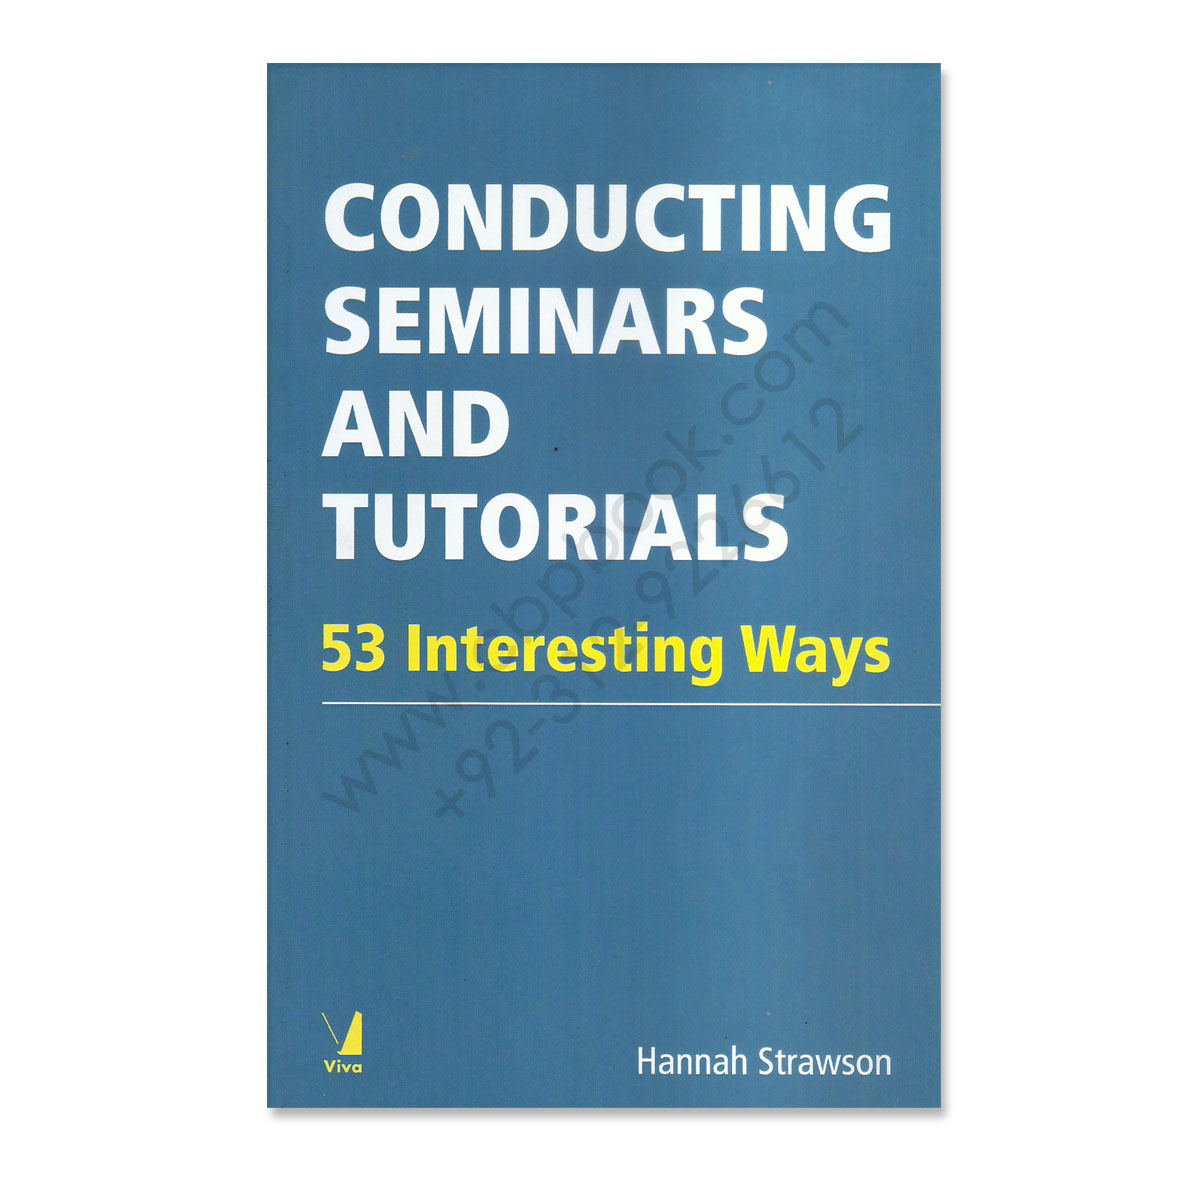 conducting seminars and tutorials 53 ineresing ways by hannah srawson